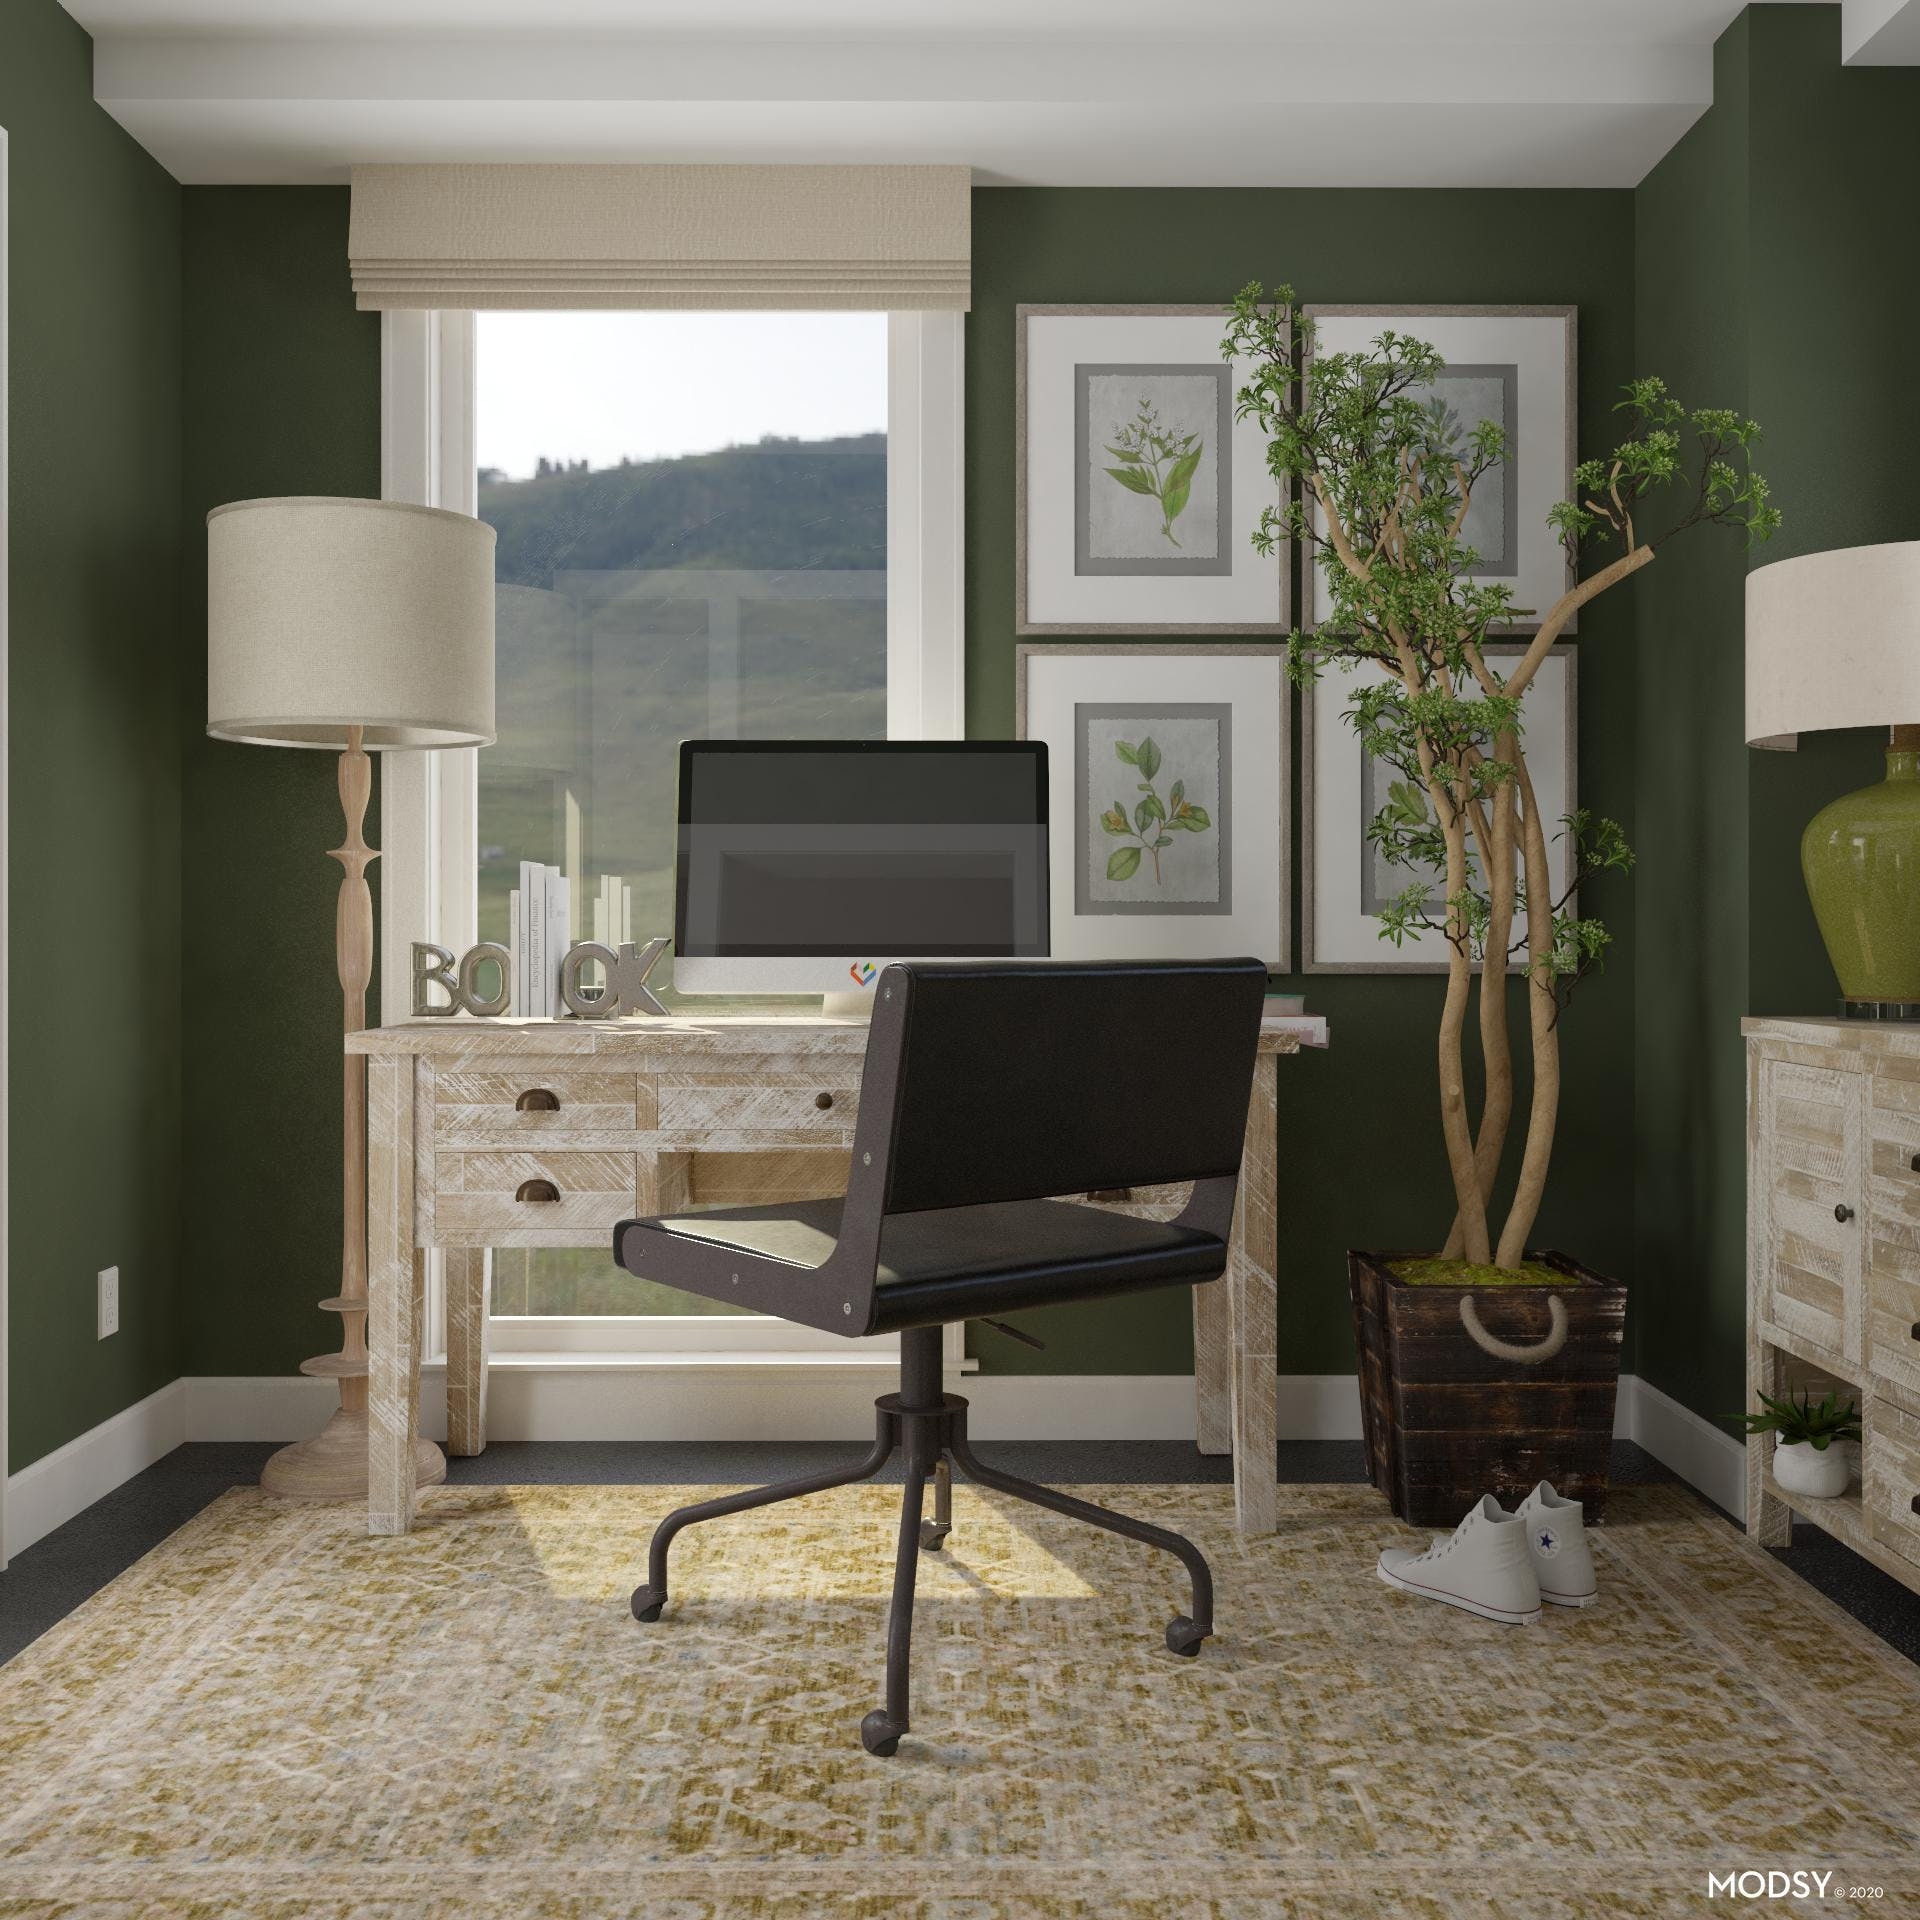 Rustic Desk with a Green Pop